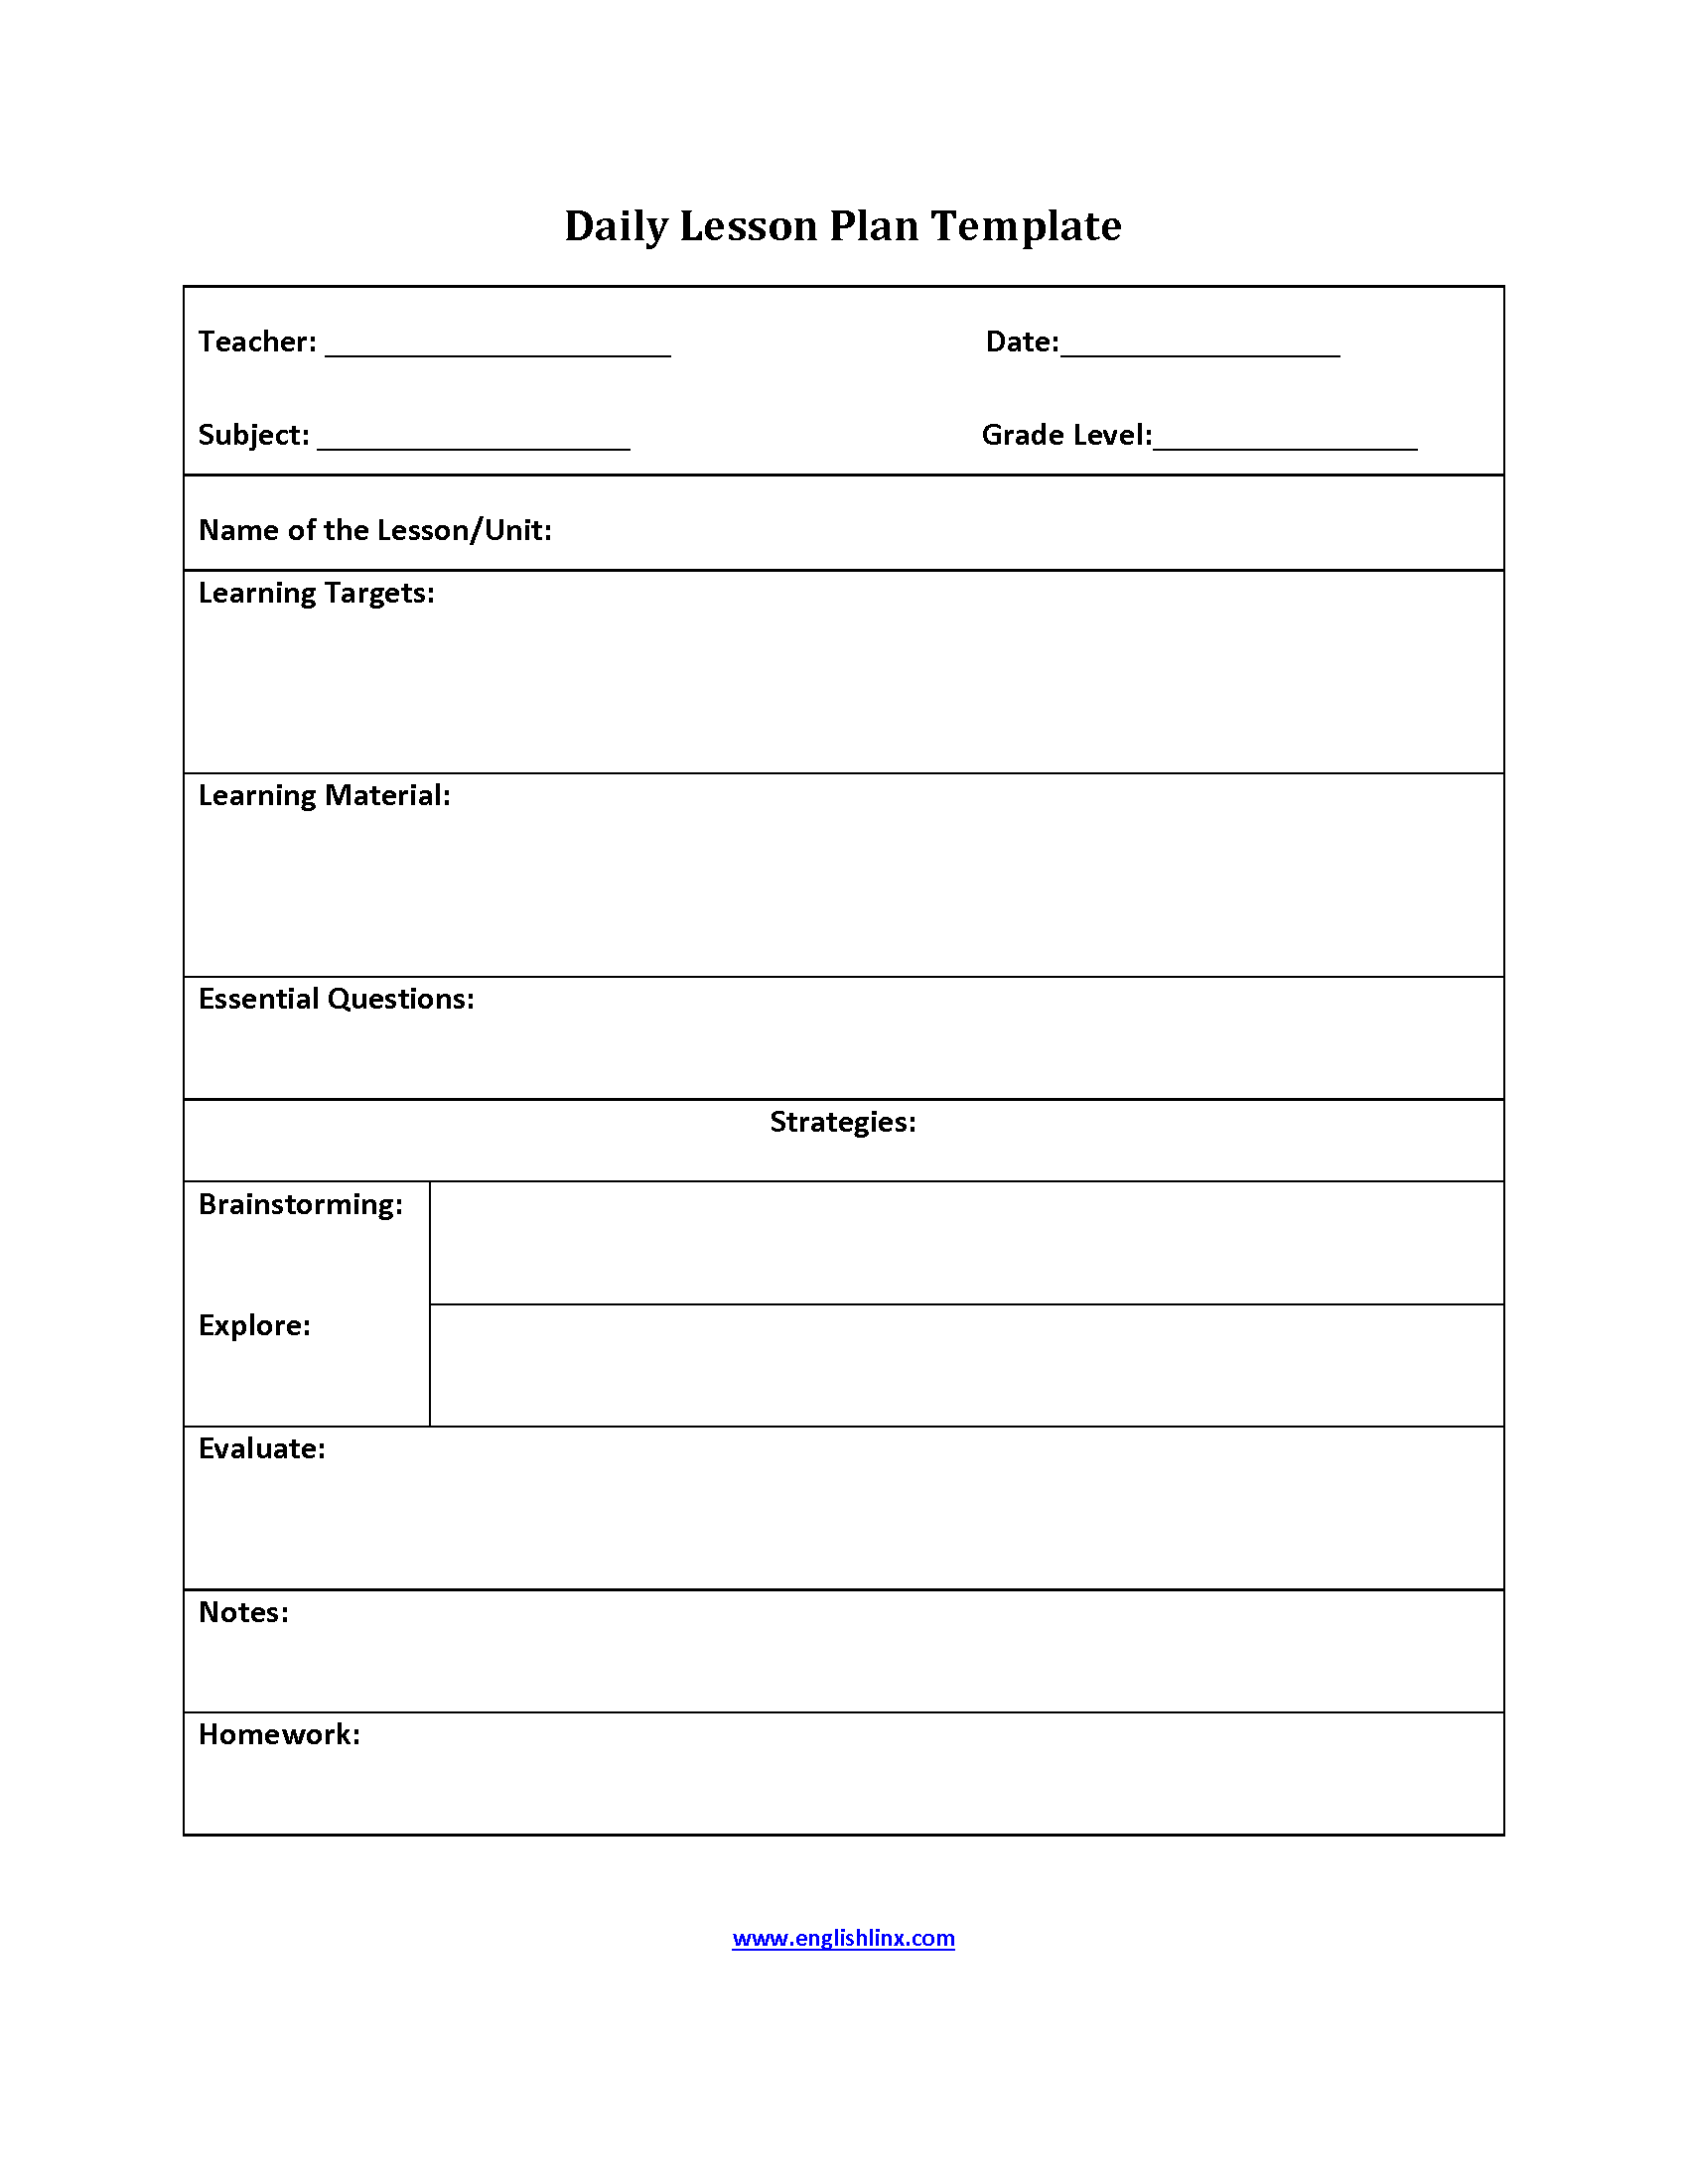 Englishlinxcom Lesson Plan Template - Simple lesson plan template for teachers